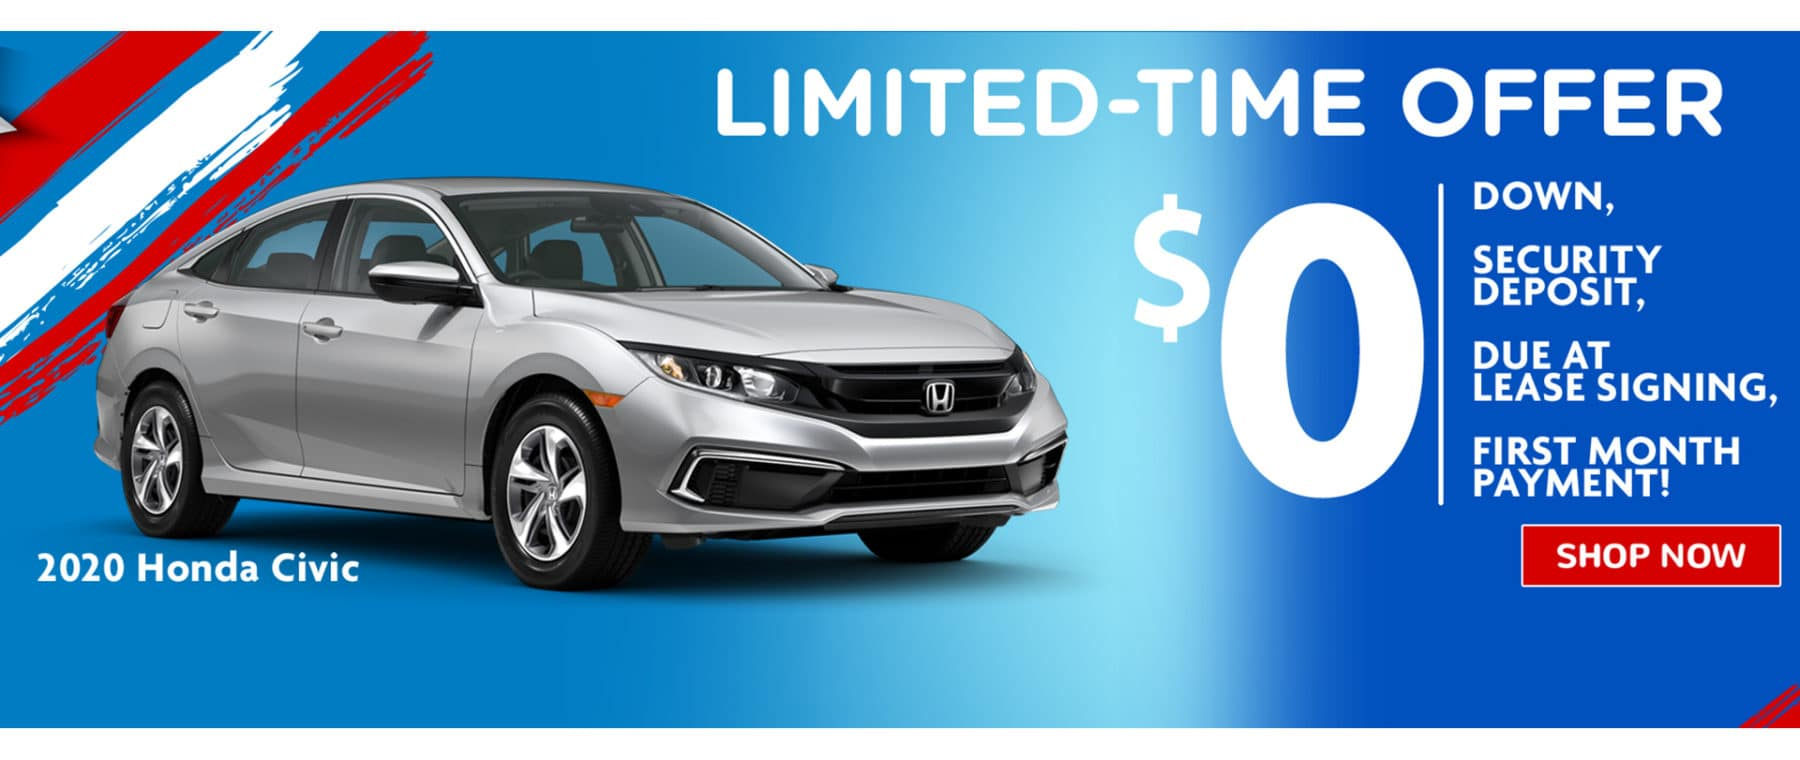 2020 Honda Civic LX Limited Time Offer Lease